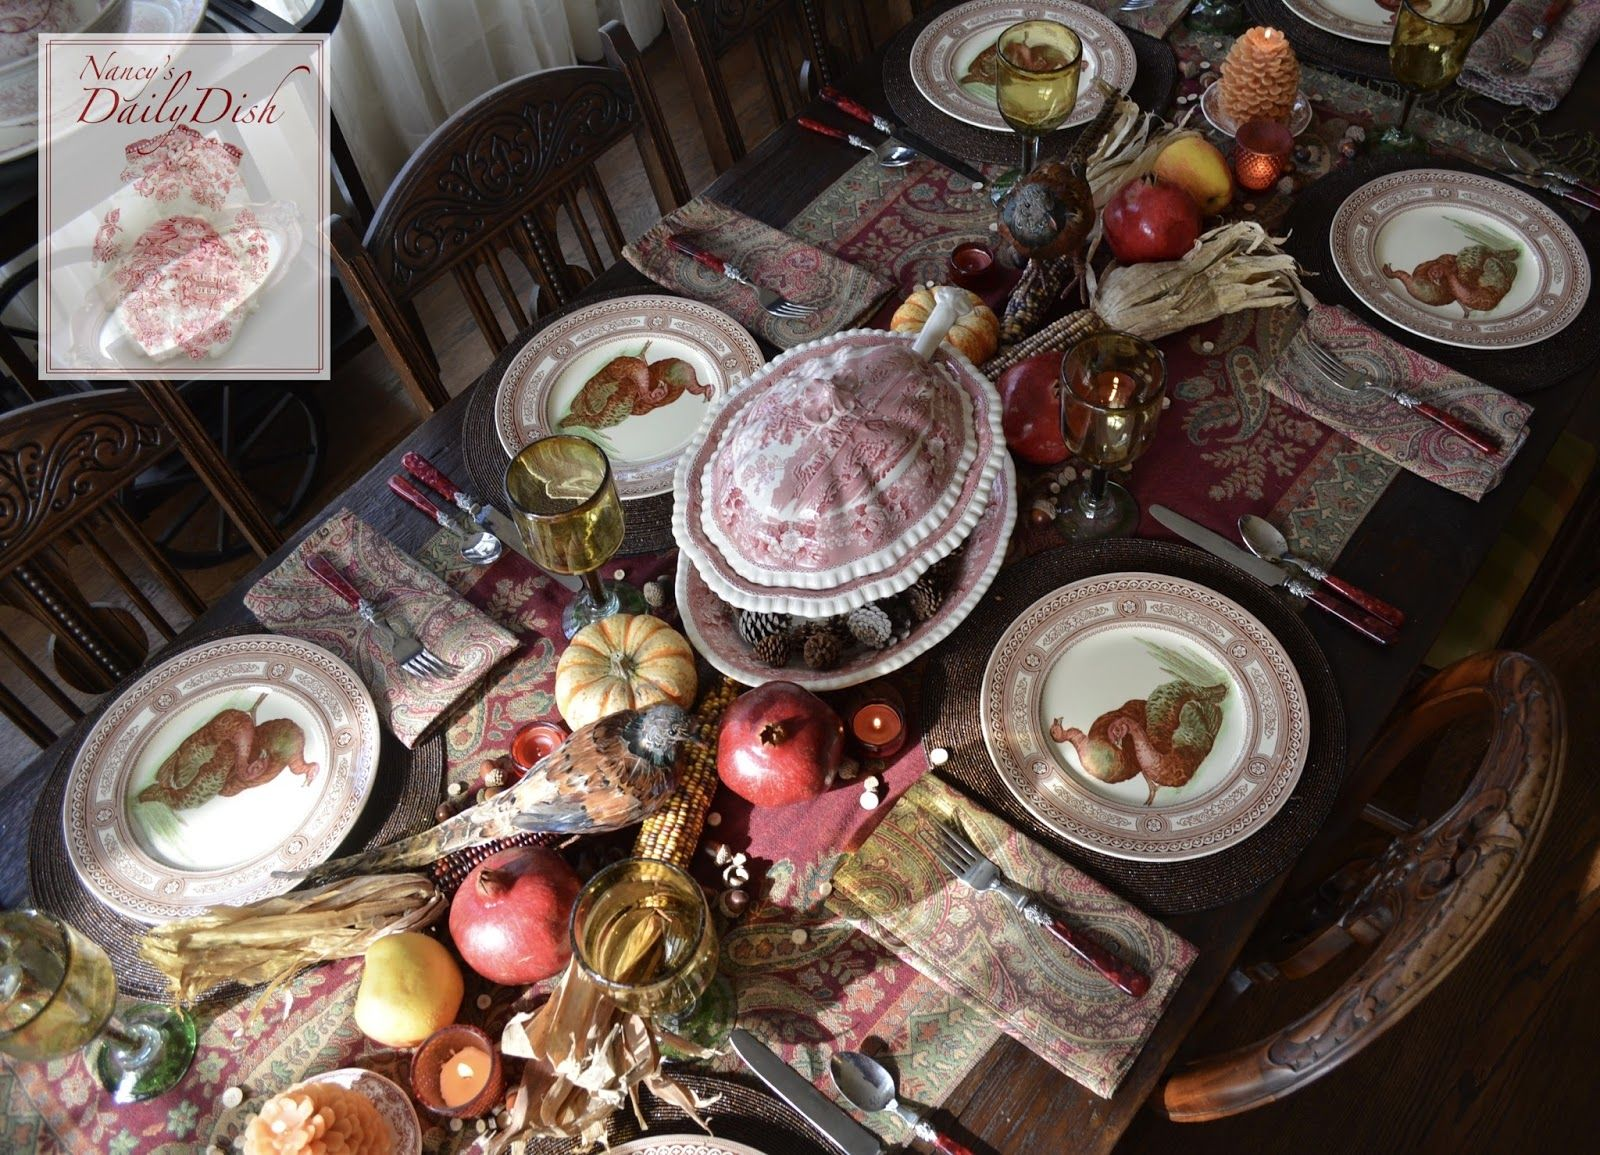 Nancy's Daily Dish is a blog about decorating, interior design, table-scaping, antiques, recipes and collecting...all with an emphasis on vintage English transferware, including lots of interesting facts and histories on the subject.